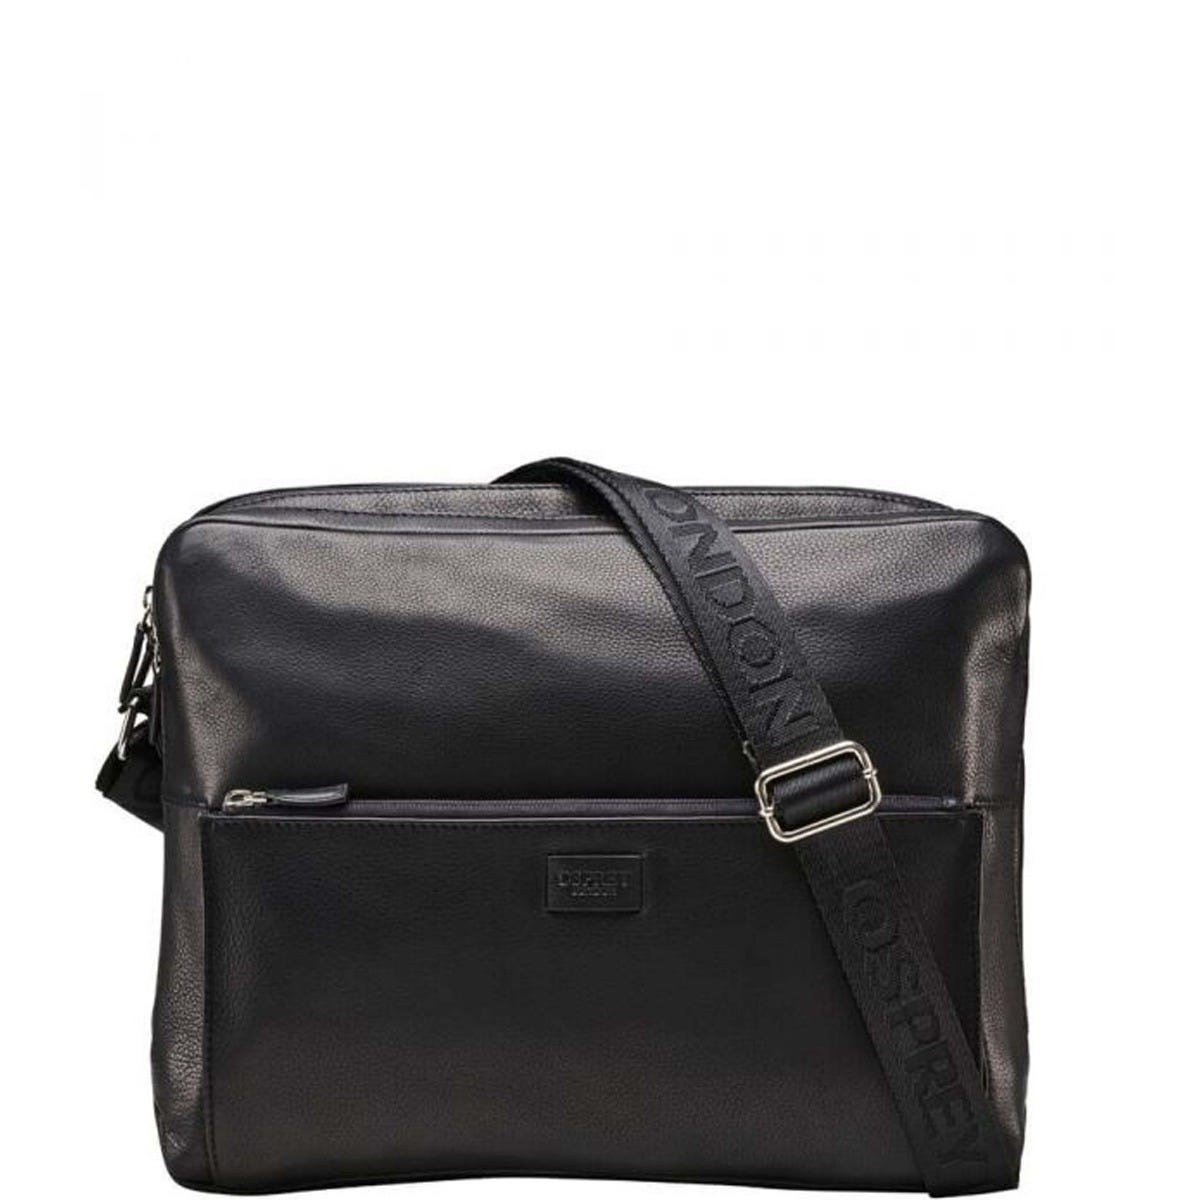 THE BALTIMORE LEATHER BUSINESS MESSENGER